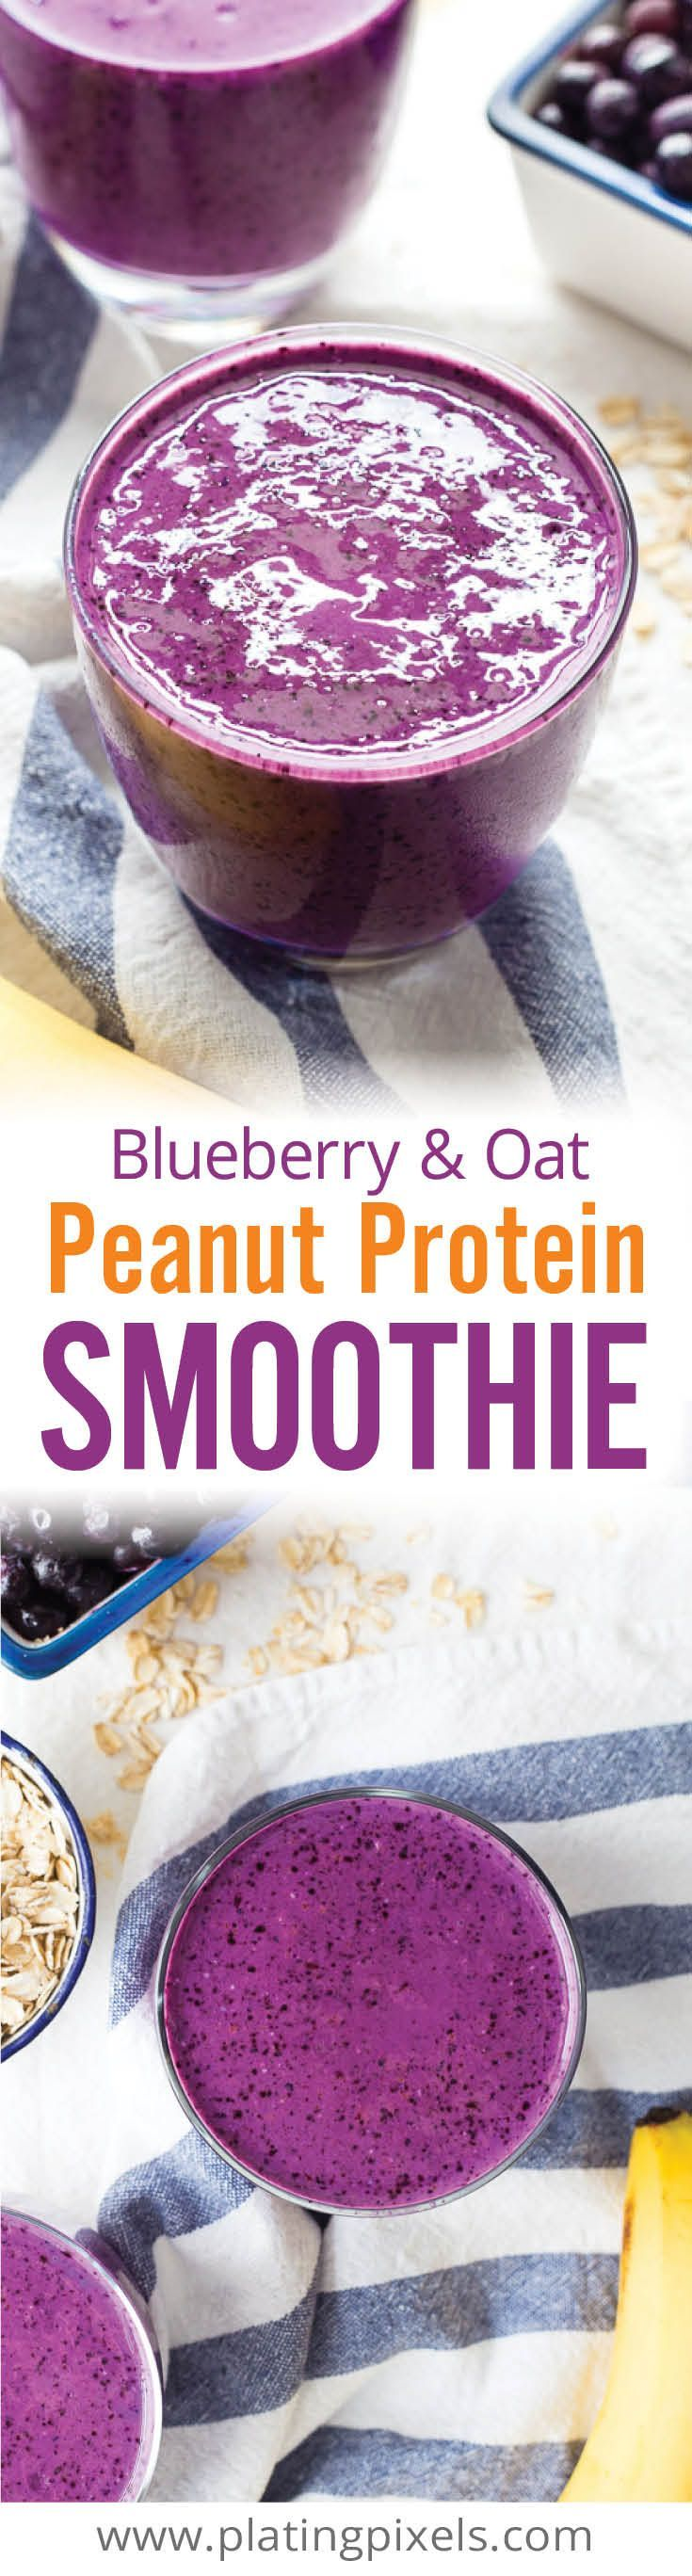 Quick and healthy gluten free breakfast smoothie with vegan option. Blueberry Peanut Butter Protein Smoothie with oats, almond milk, greek yogurt, banana and protein powder. Easy, thick and creamy breakfast smoothie that tastes like peanut butter and jelly! - www.platingpixels.com